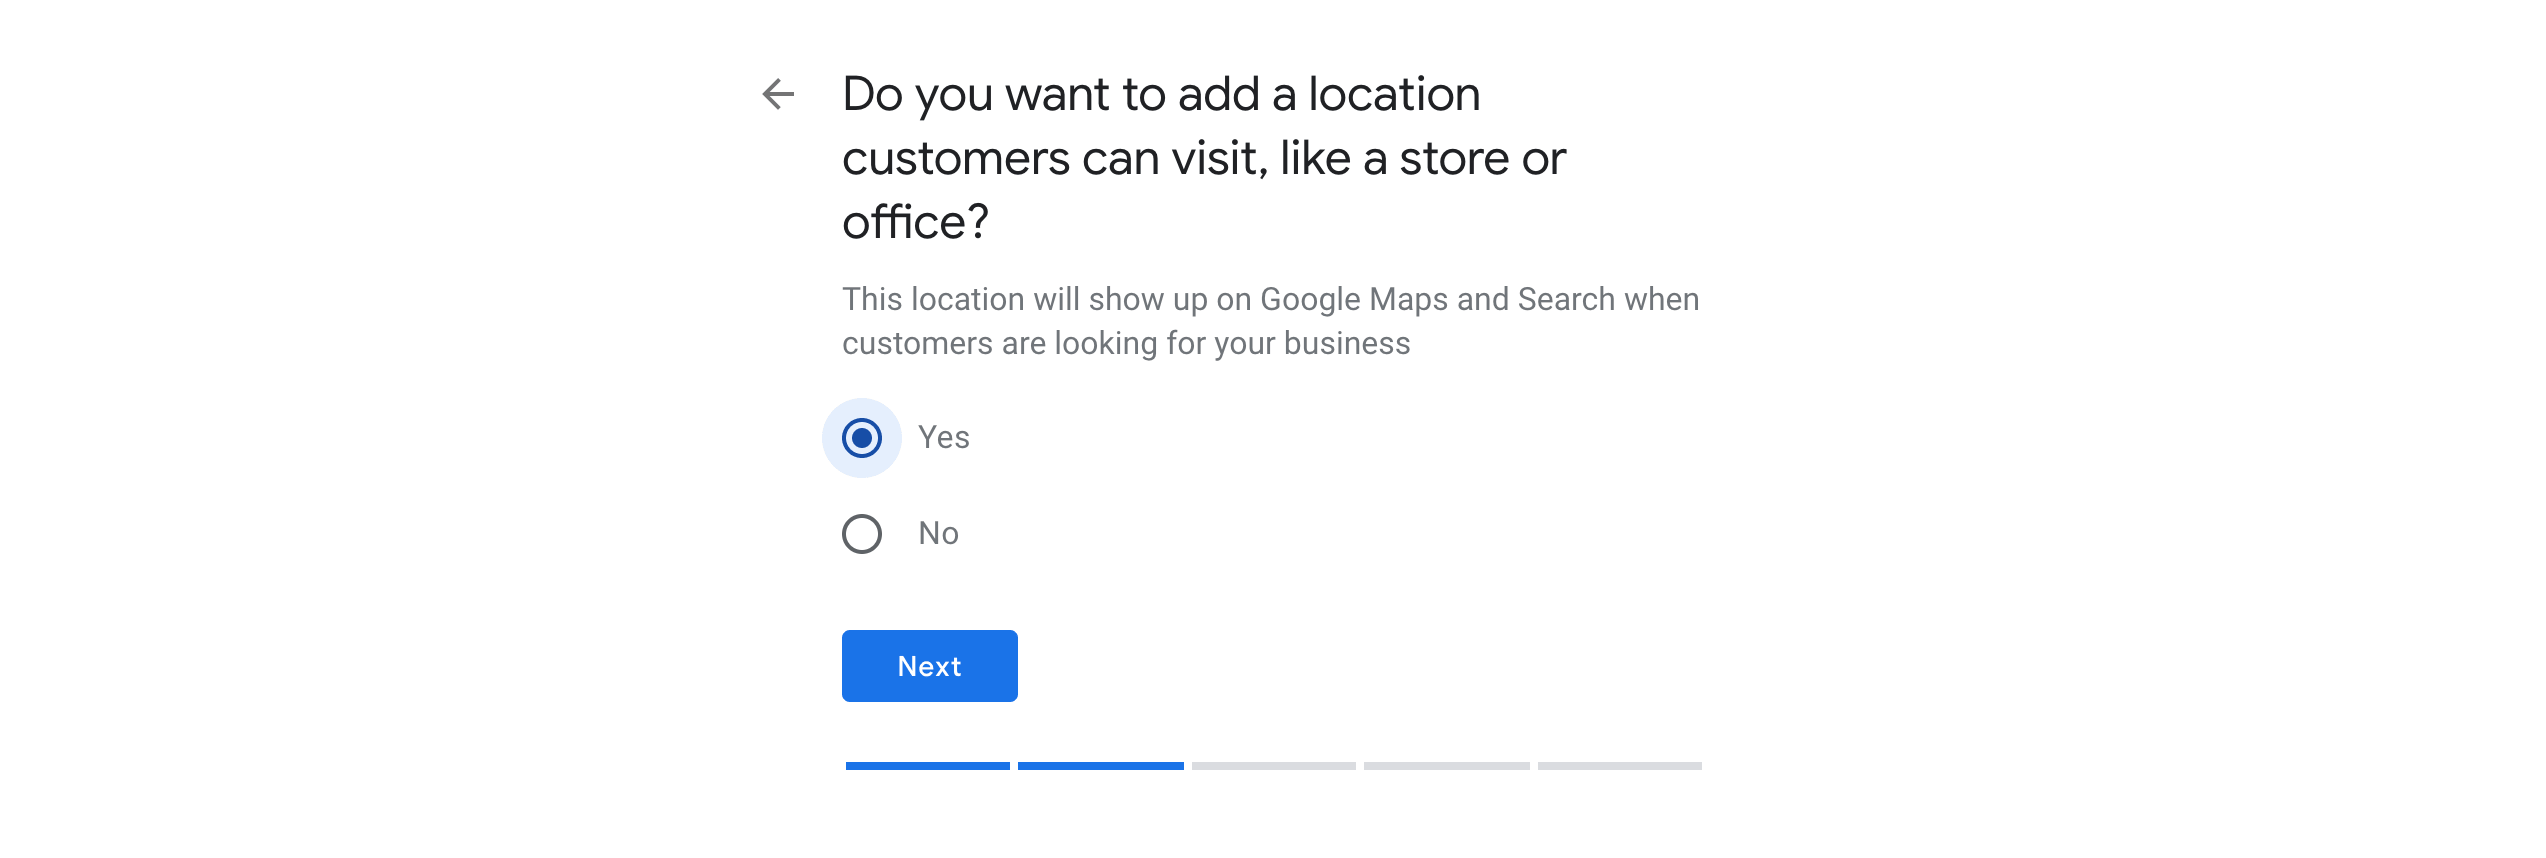 Choosing to add a physical store or office for a Google My Business.